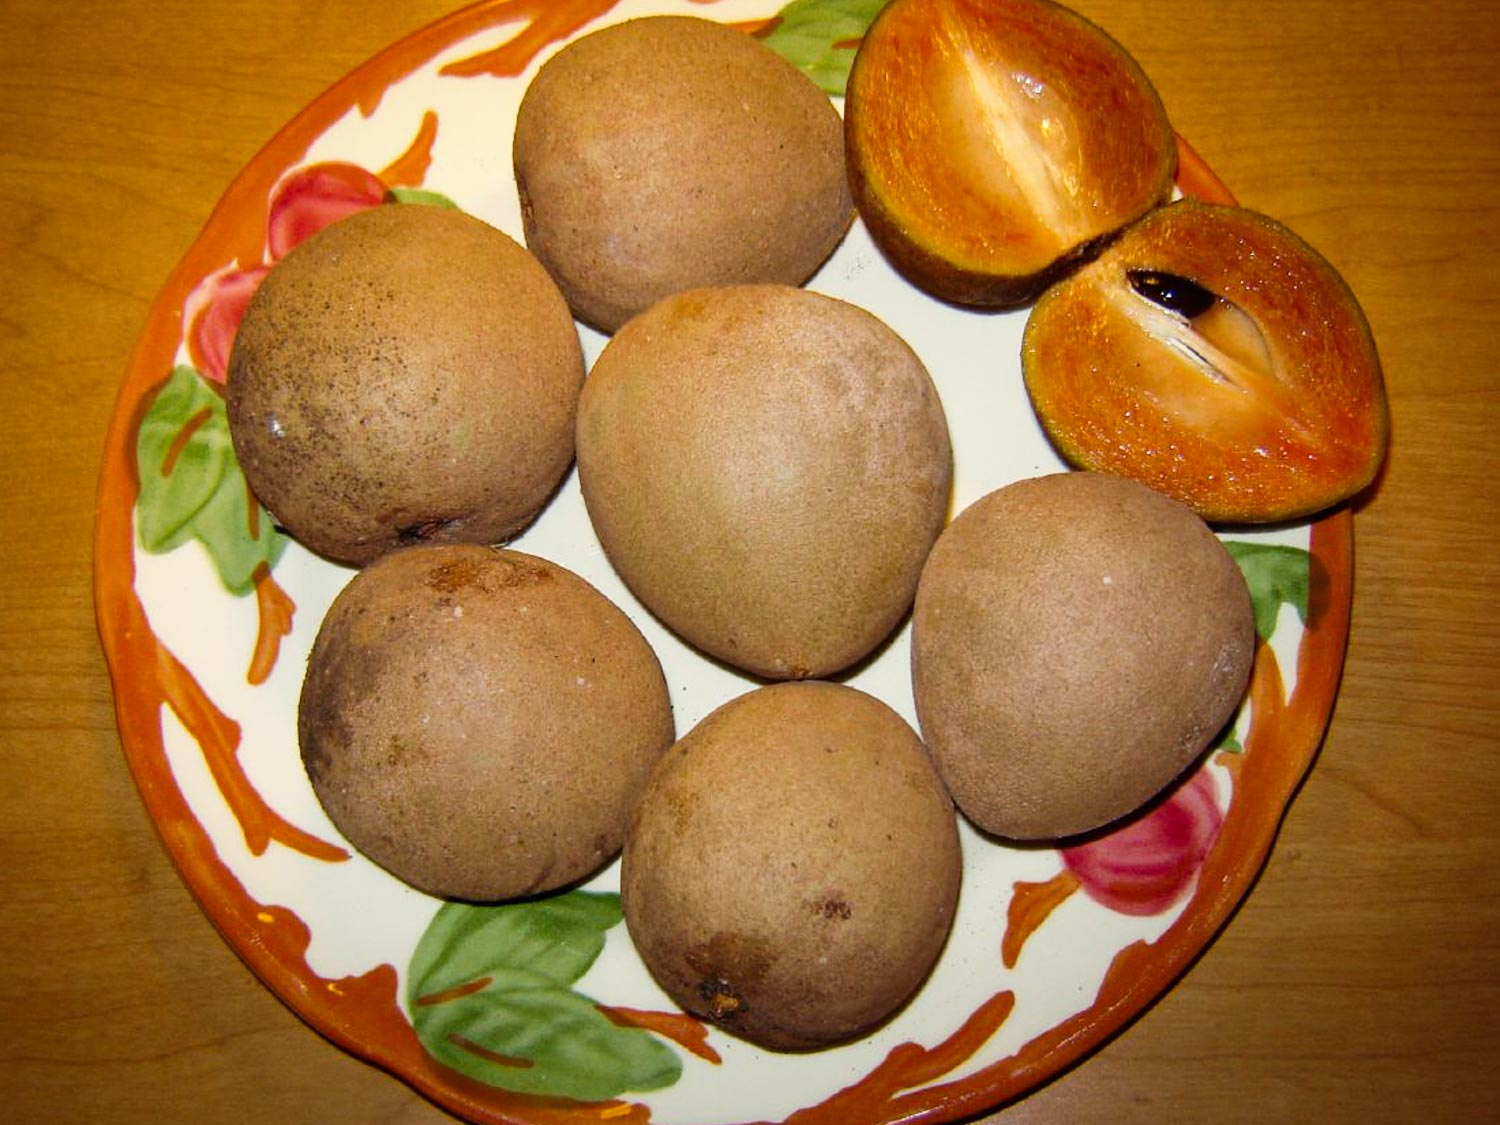 Jamaican naseberry fruis on a plate with one cut to show inner flesh